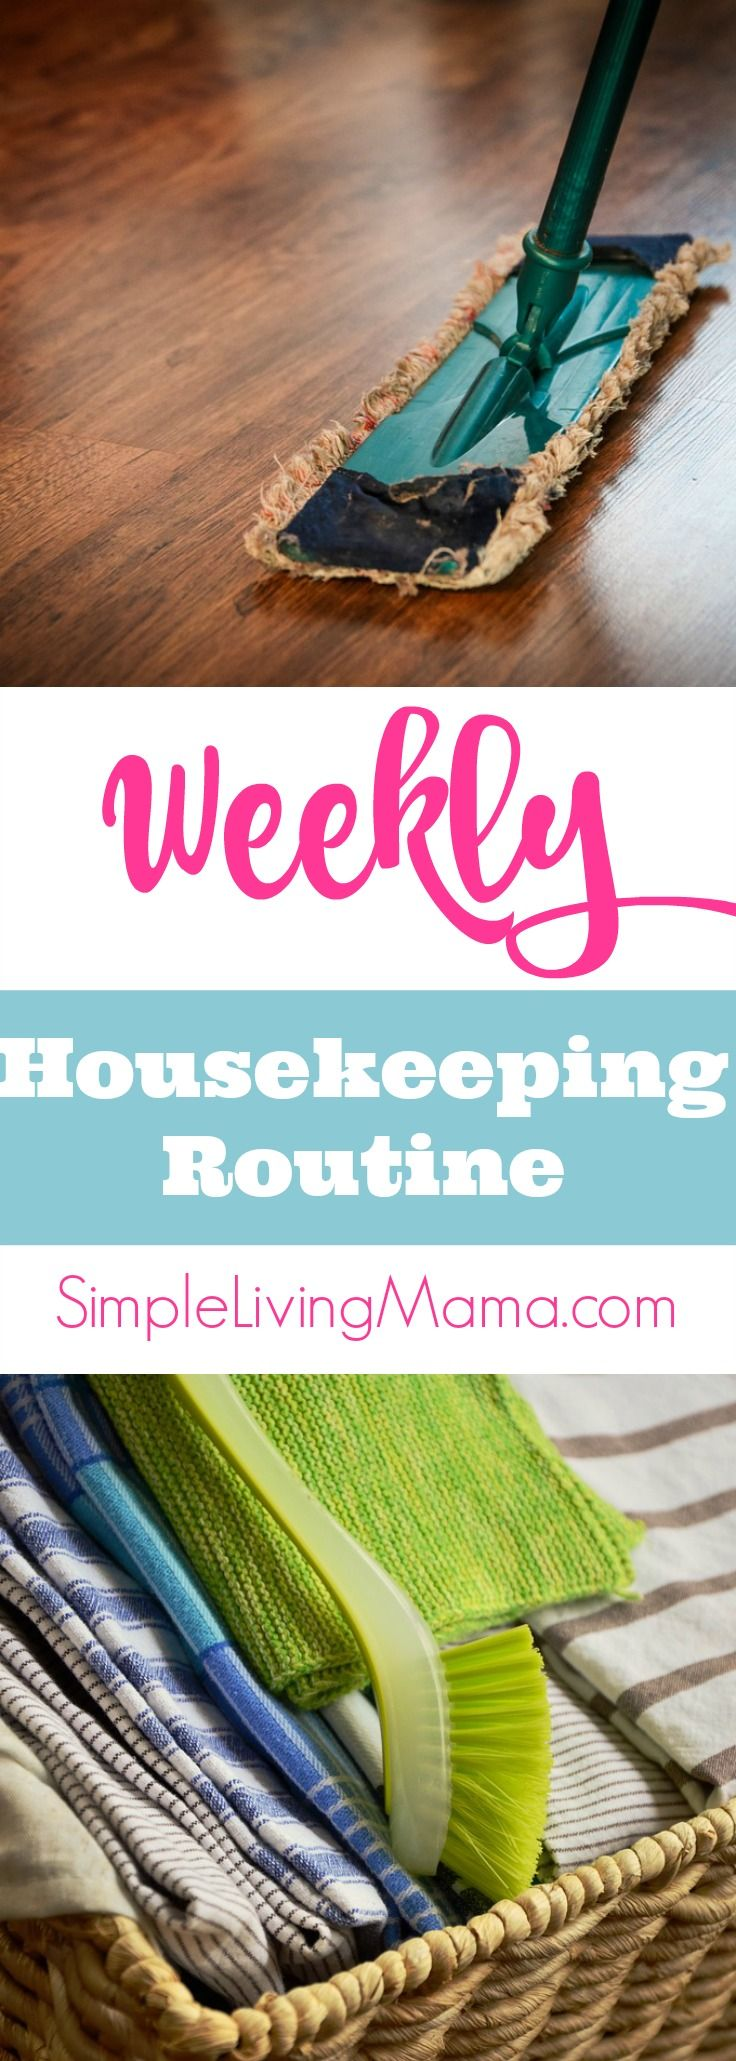 Are you struggling with keeping your house clean? A weekly housekeeping routine will help you keep your home in good shape with a little bit of effort each day!